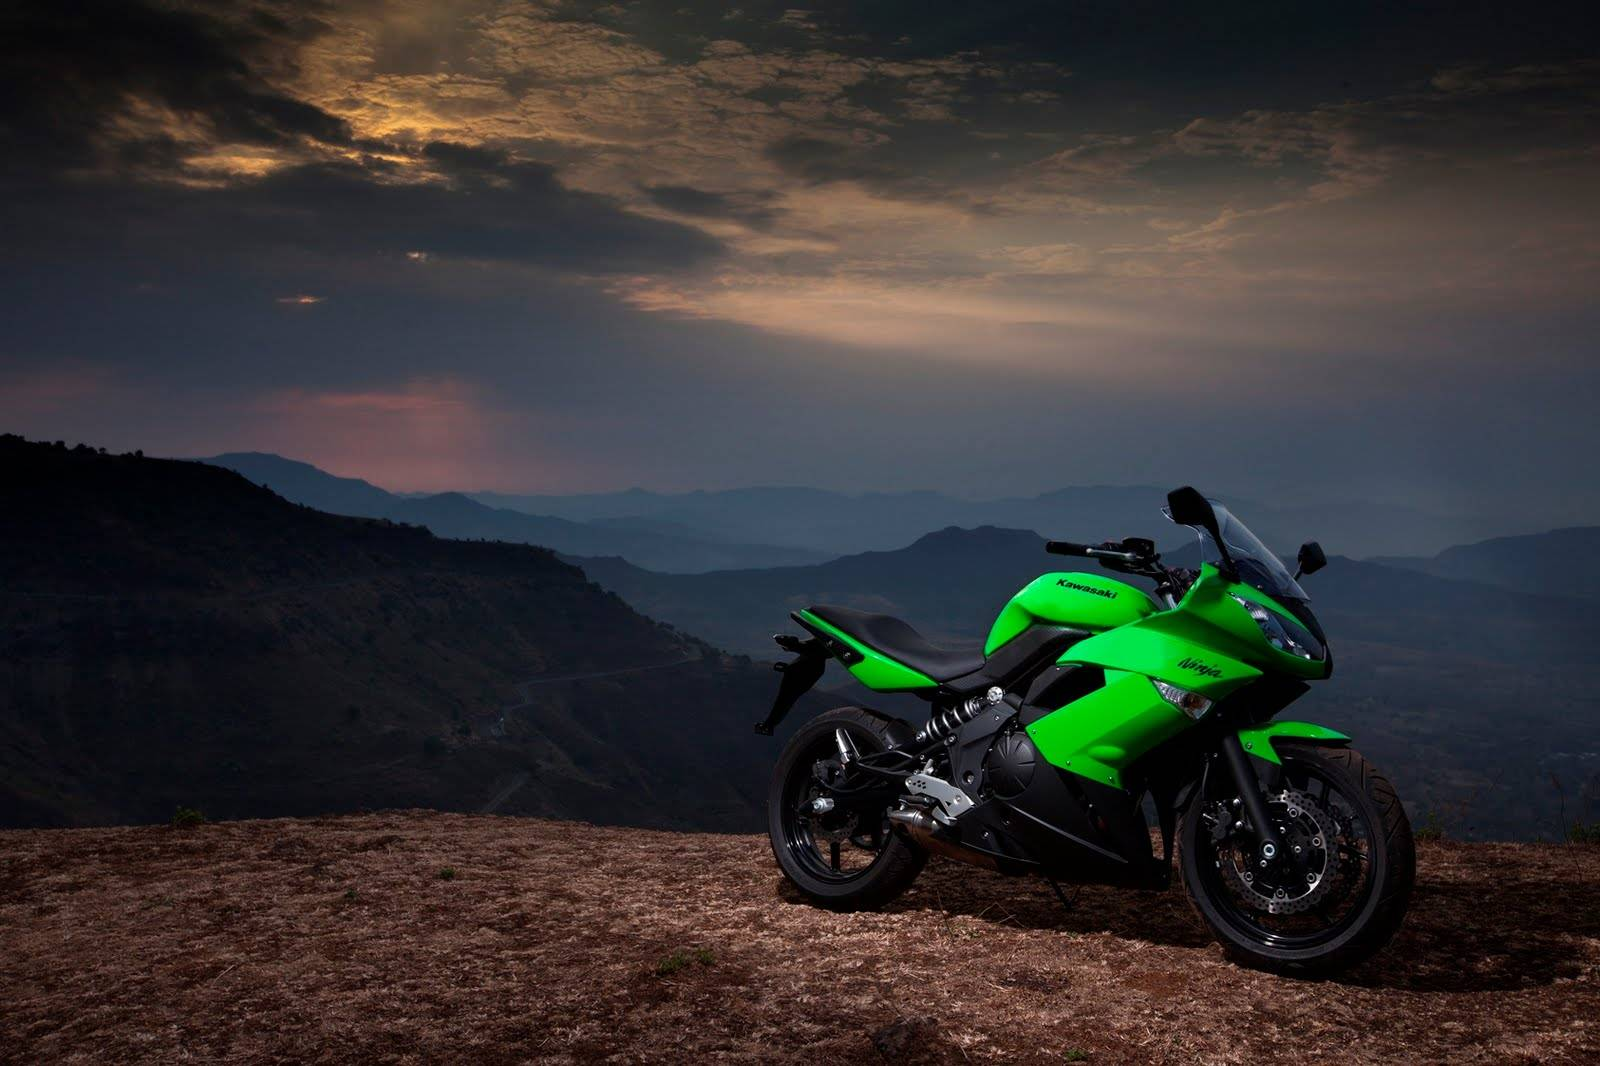 Green Kawasaki Ninja 650R background